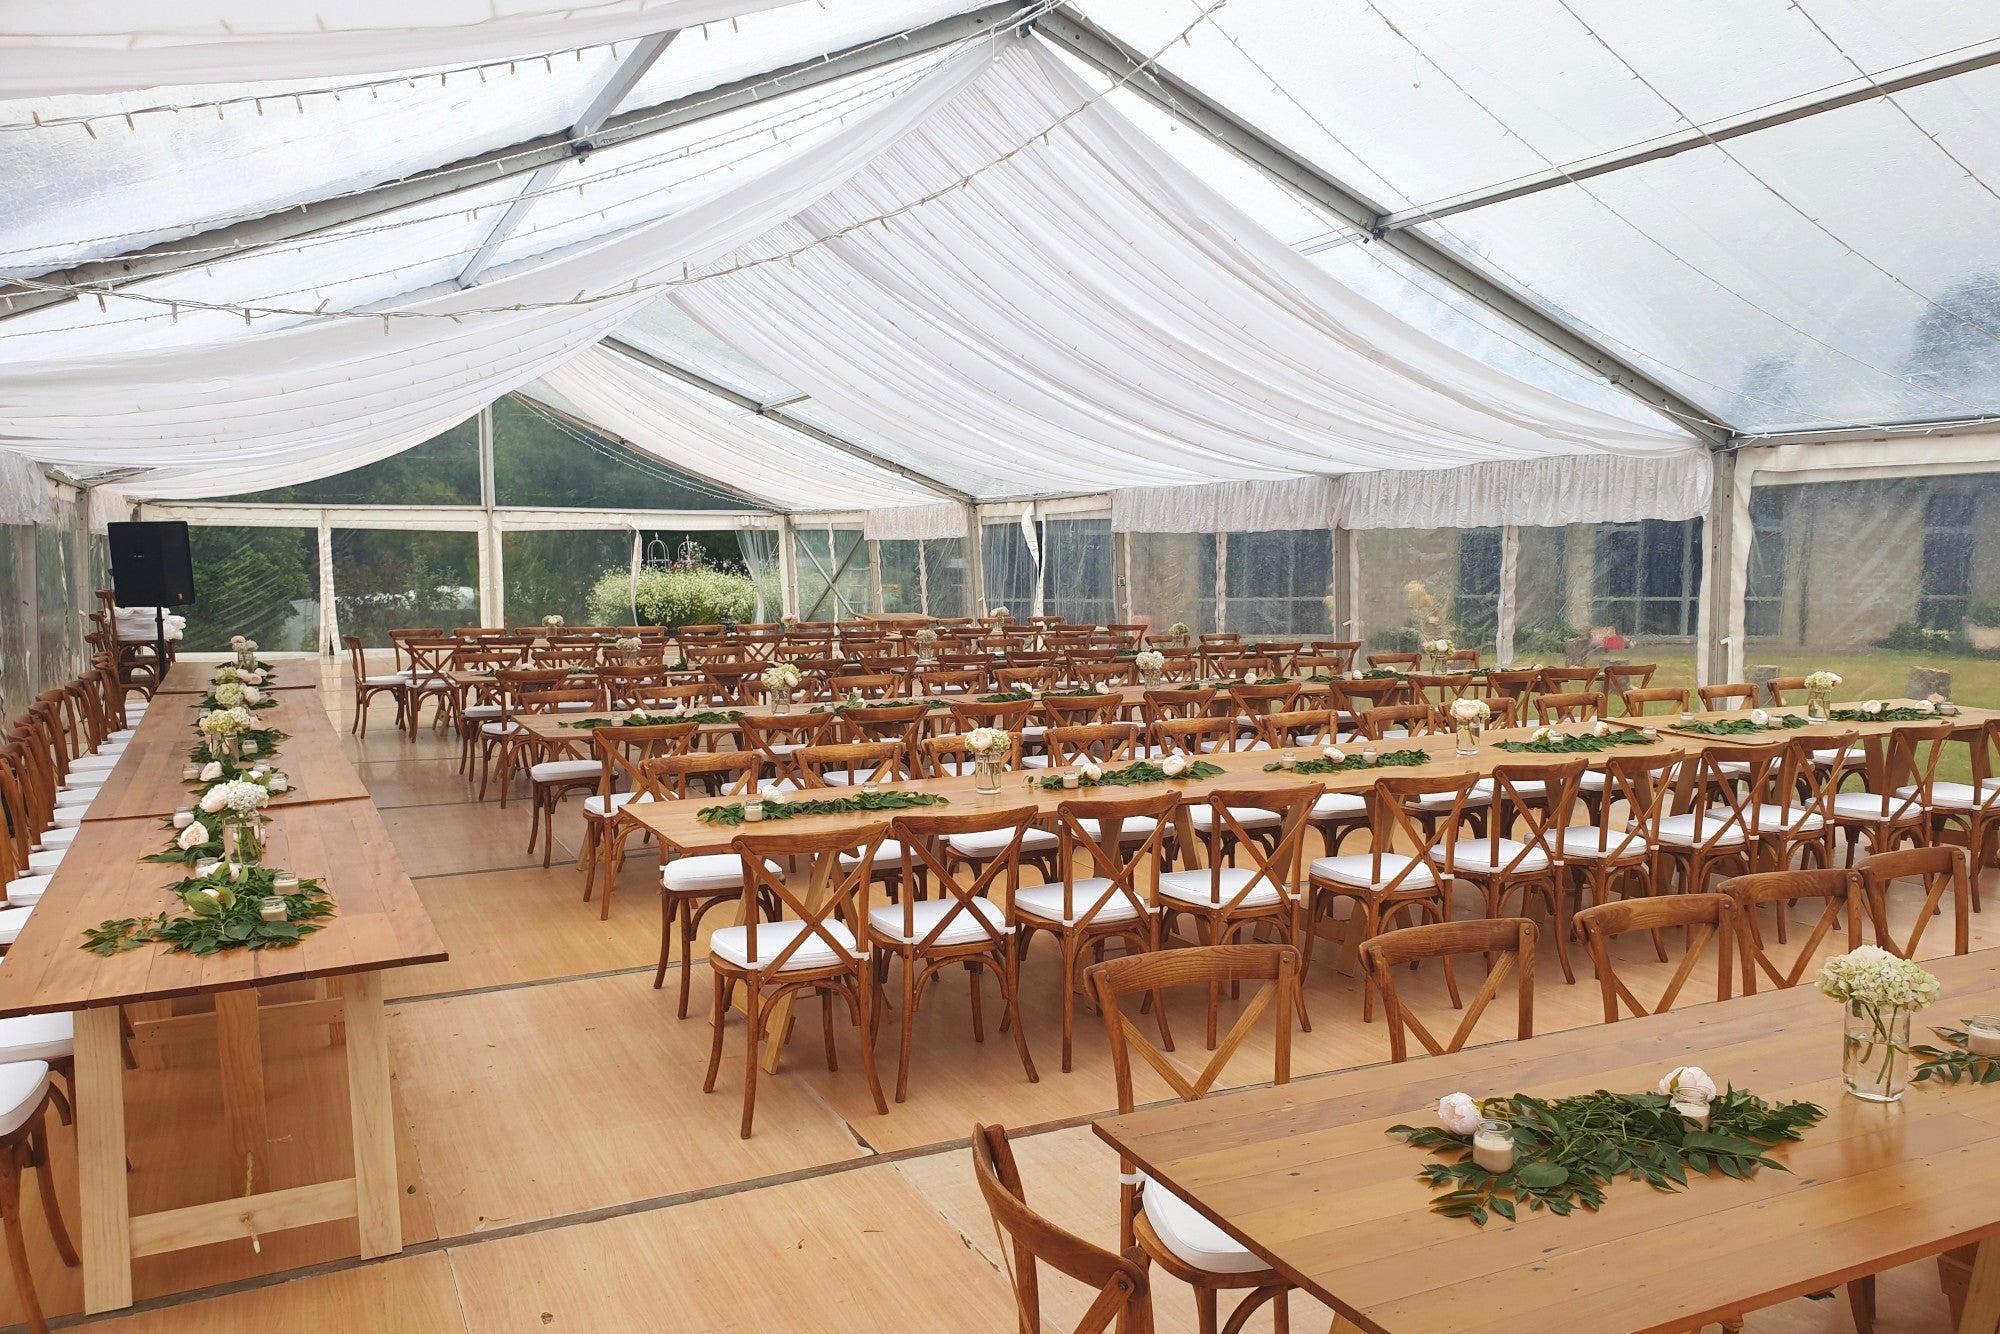 NZ Marquee Hire has a Zero Risk Booking policy for covid impact